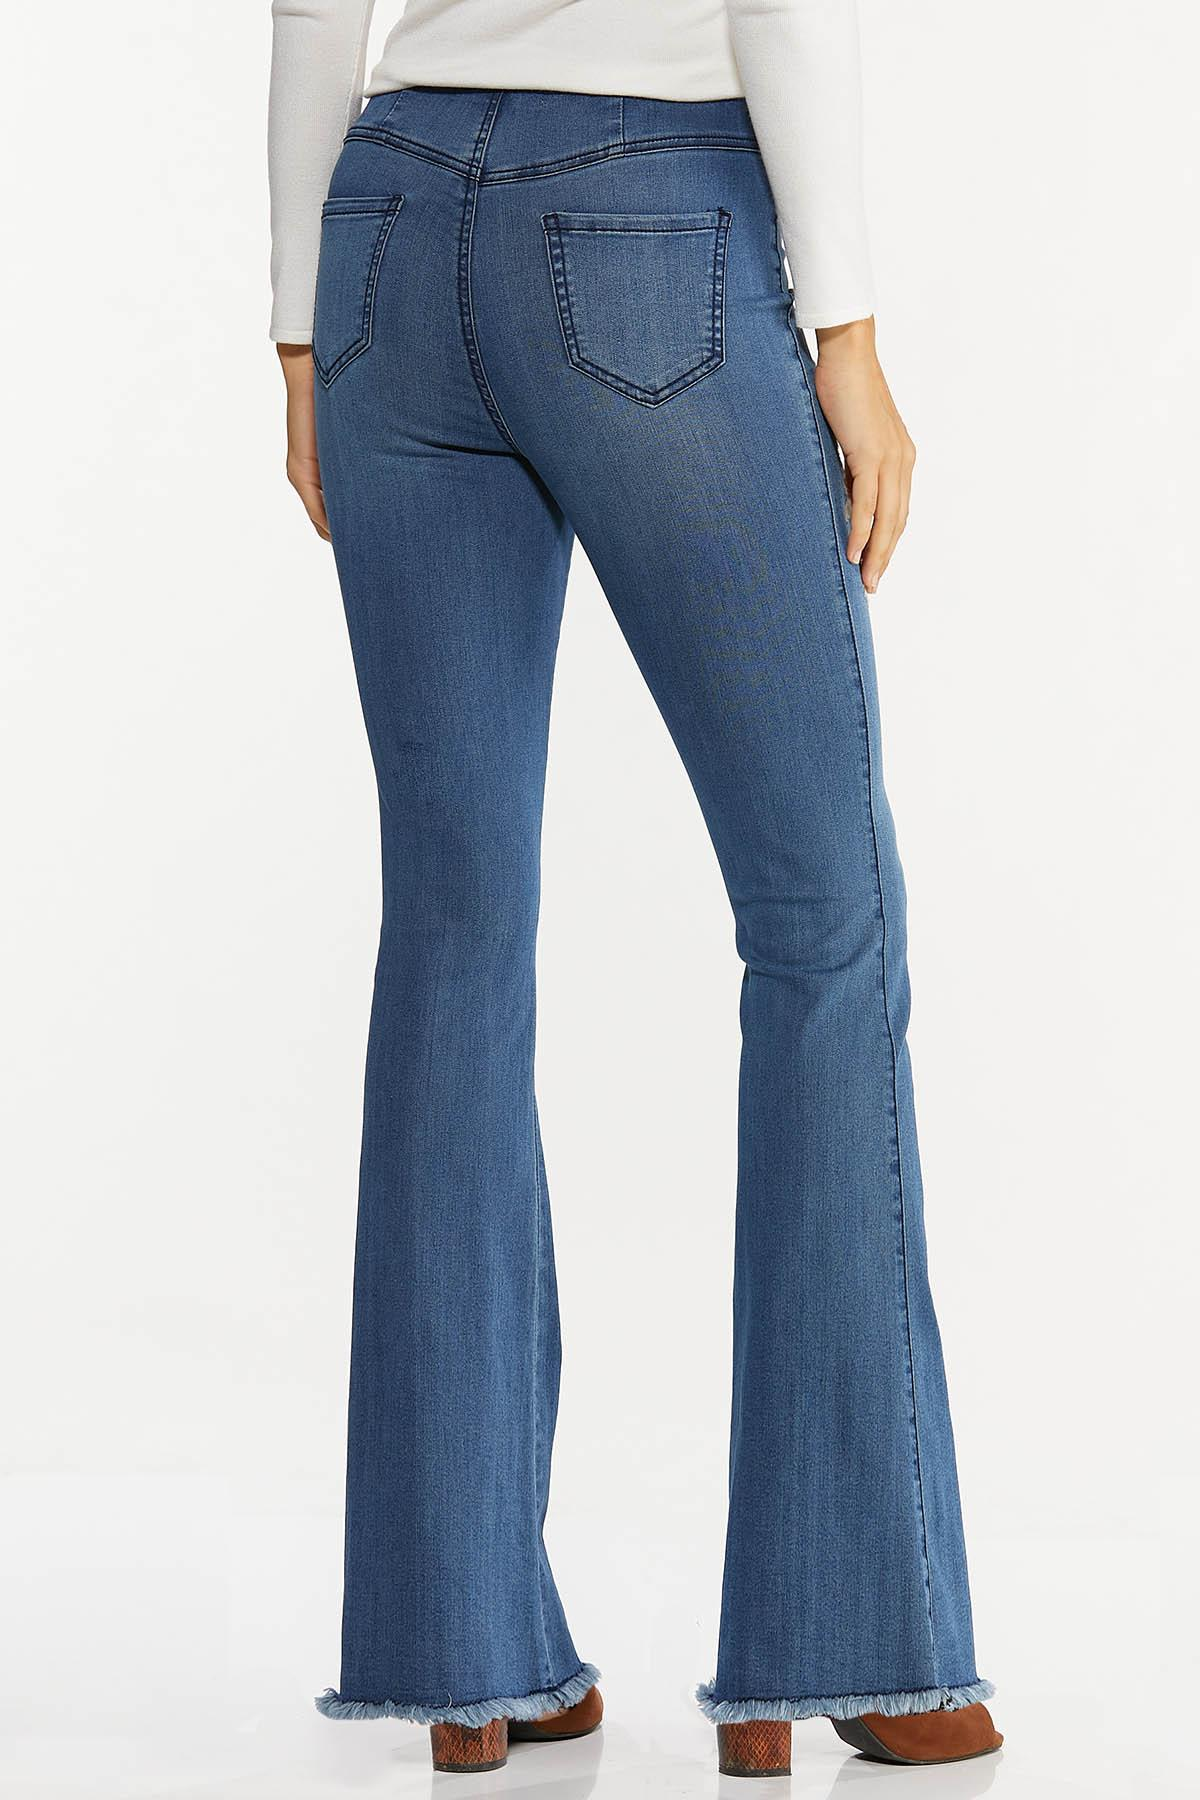 Petite Floral Embroidered Flare Jeans (Item #44669249)